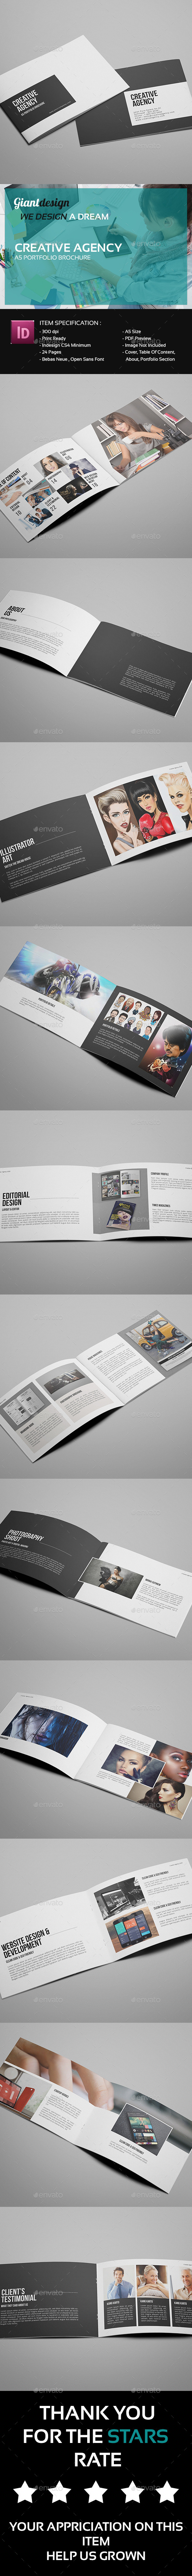 GraphicRiver Creative Agency A5 Portfolio Brochure 9699291